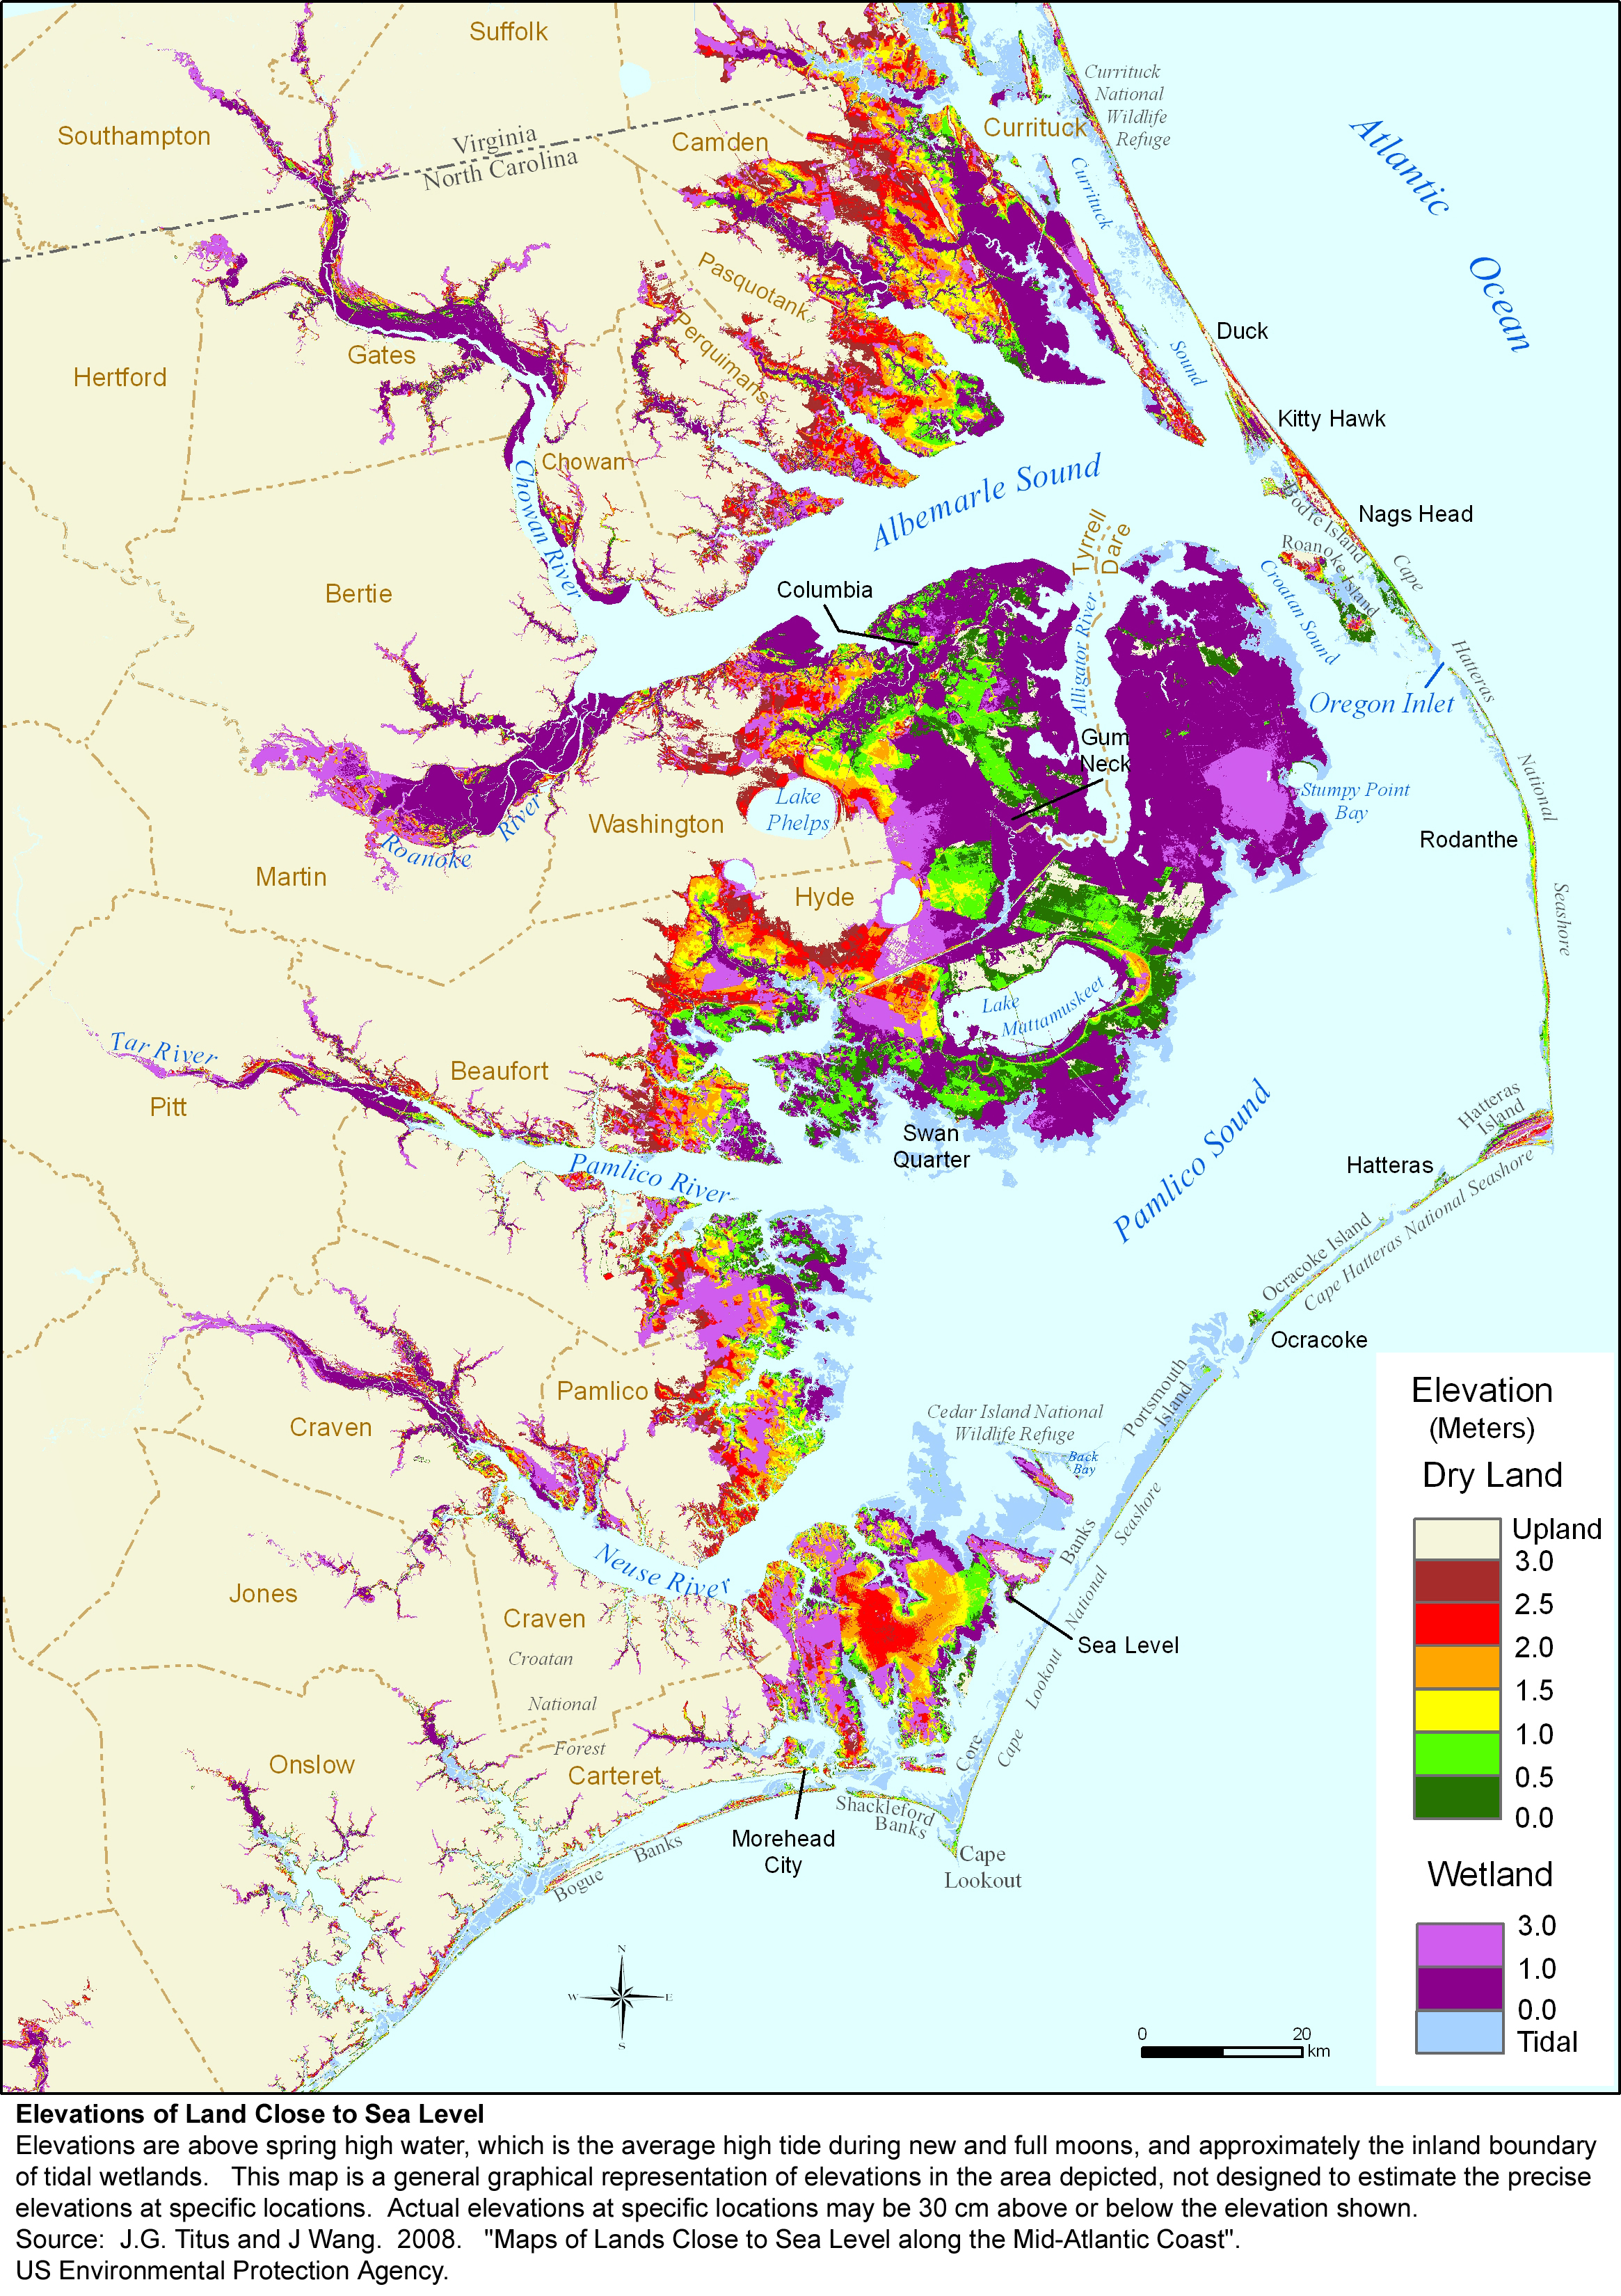 Sea Level Rise Planning Maps: Likelihood of S Protection ... on carolina coastal map, virginia coast map, vermont coast map, southwest florida coast map, gulf coast map, oak island map, north washington coast map, northeast coast map, fl coast map, s california coast map, portland coast map, sw florida coast map, emerald isle map, south jersey coast map, western florida coast map, northern maine coast map, north oregon coast map, north california coast map, israel coast map,